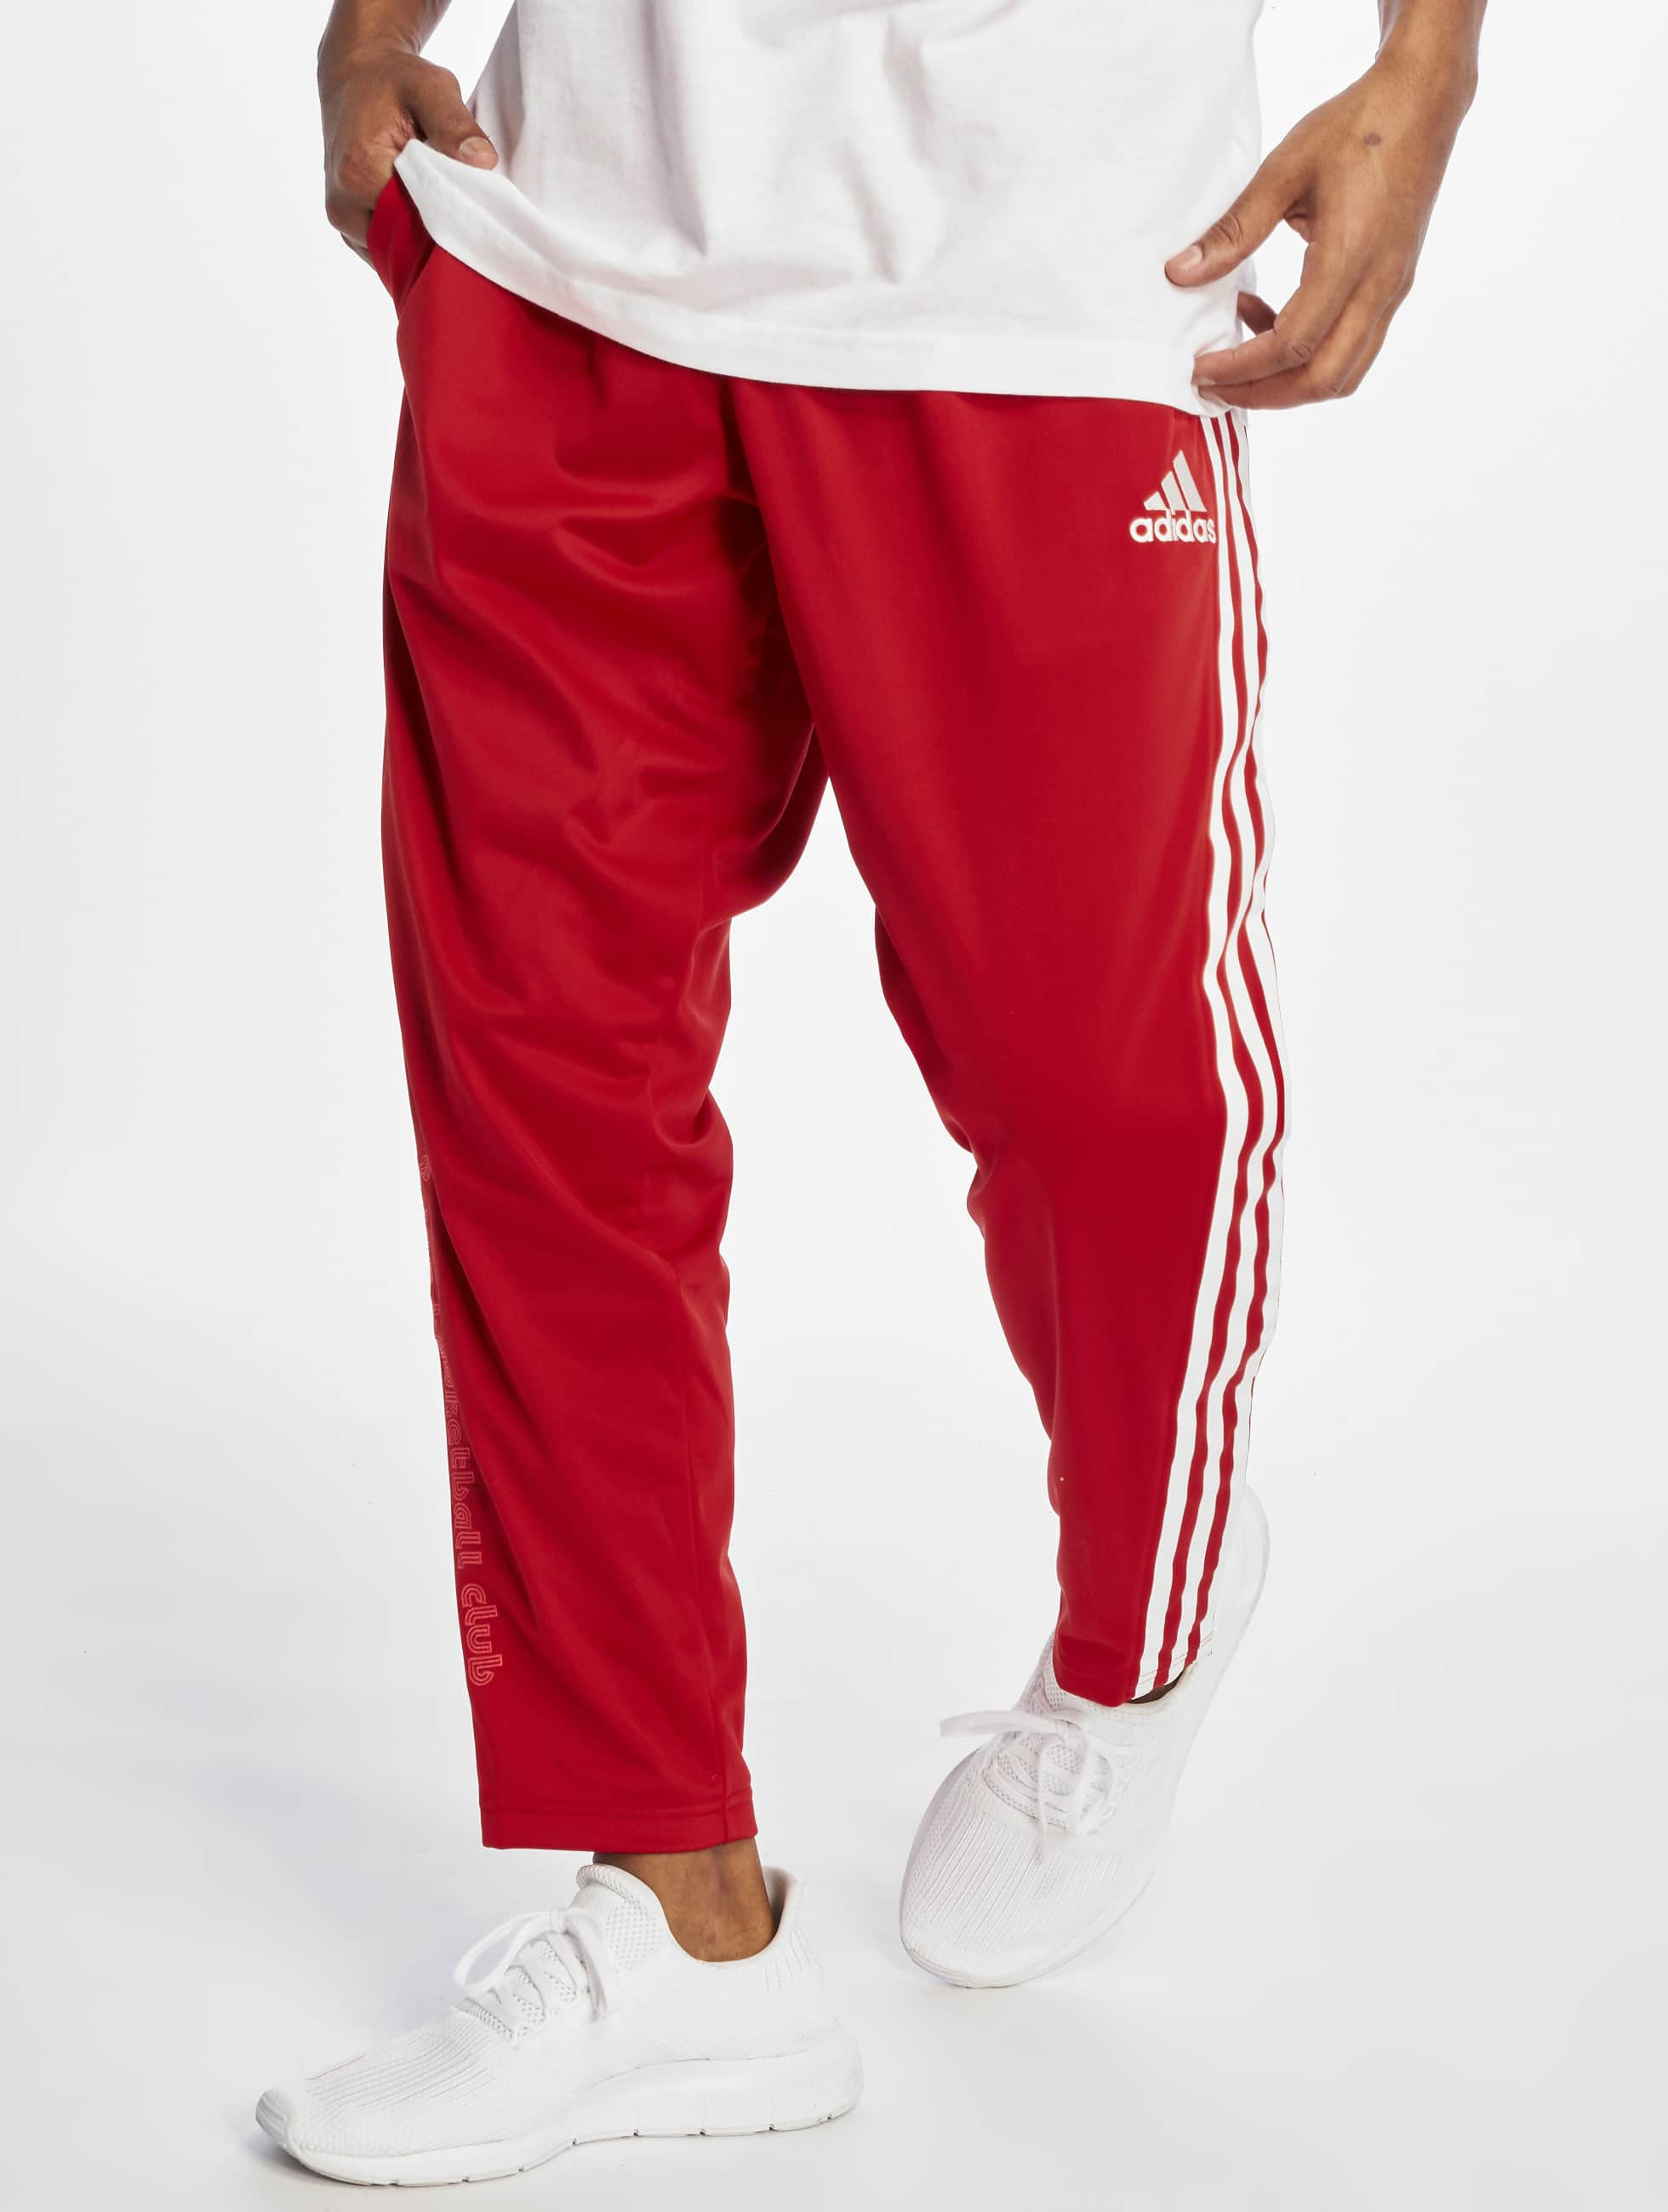 adidas jooging rouge